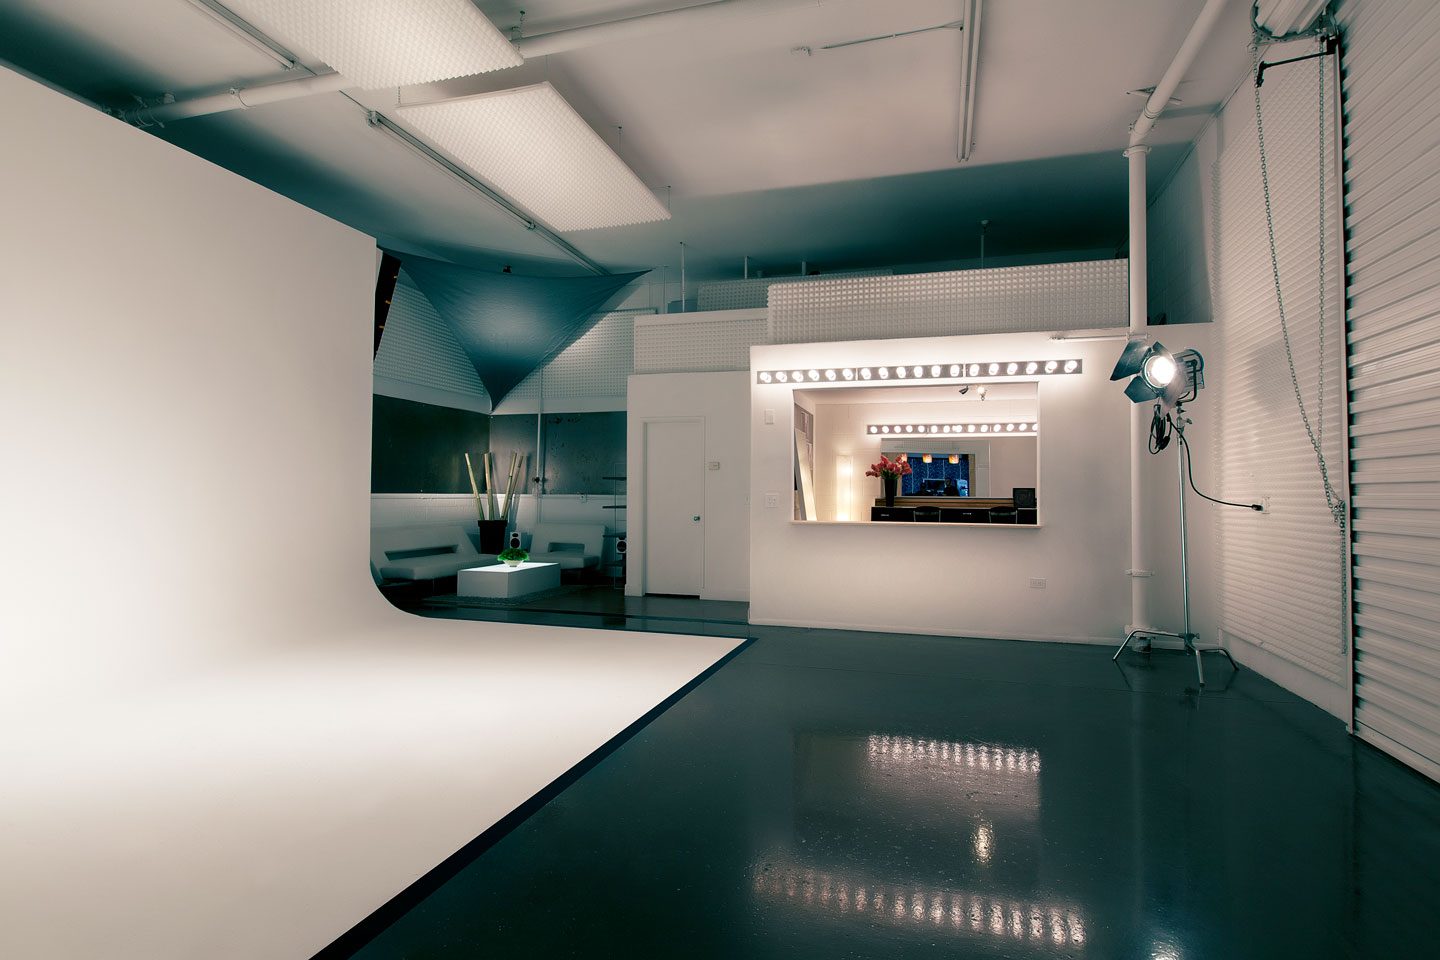 Phoenix commercial photography companies will appreciate The Family Vibe's Studio TFV for professional photography and video production needs.